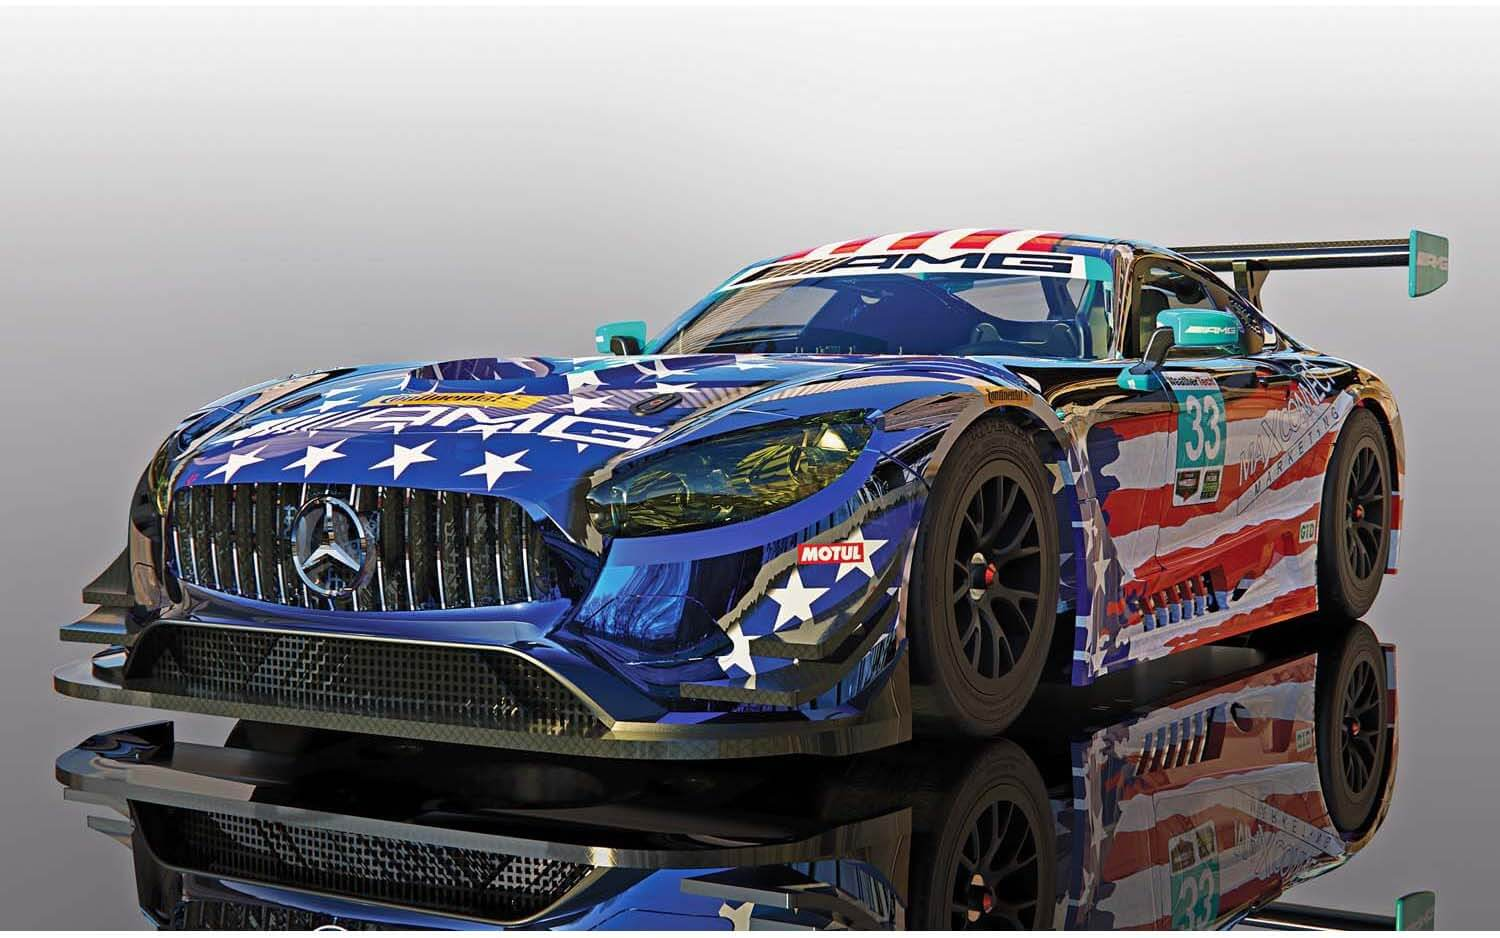 C4023 Scalextric Mercedes AMG GT3, Riley Motorsports Team